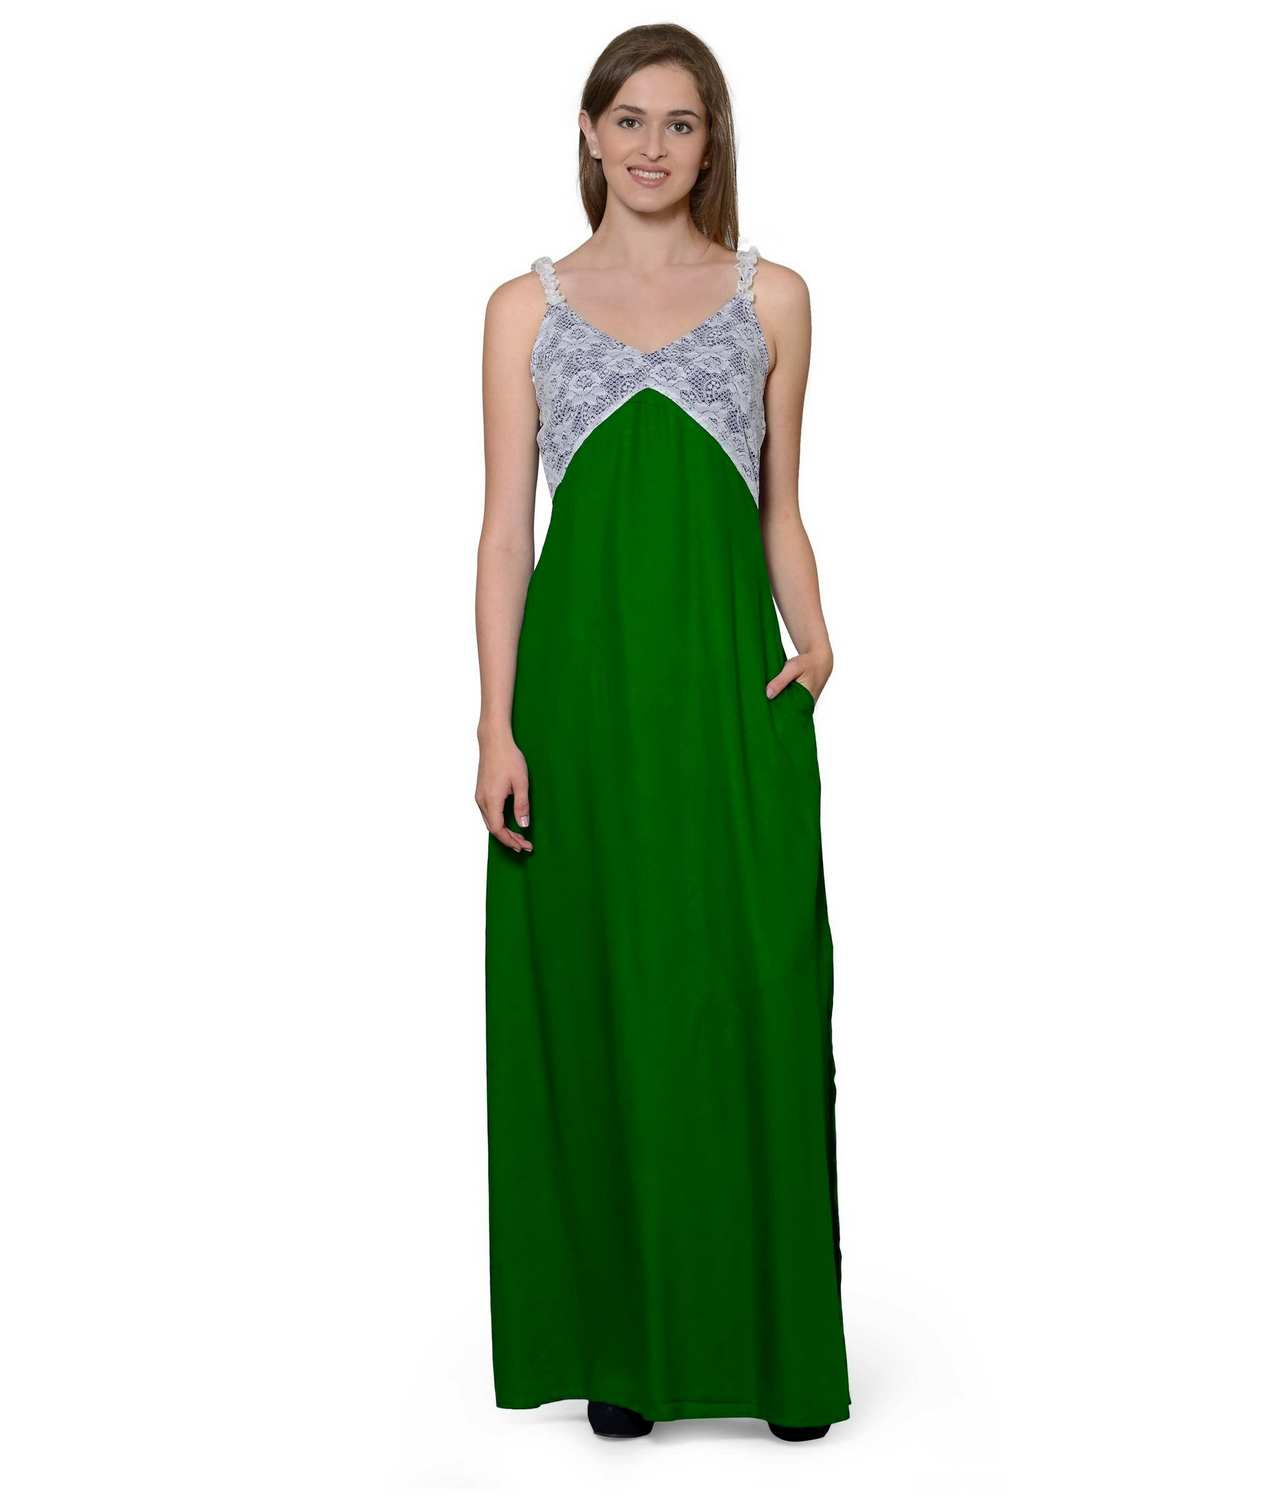 Lace Embellished Empire Maxi Gown Dress in White:Bottle Green